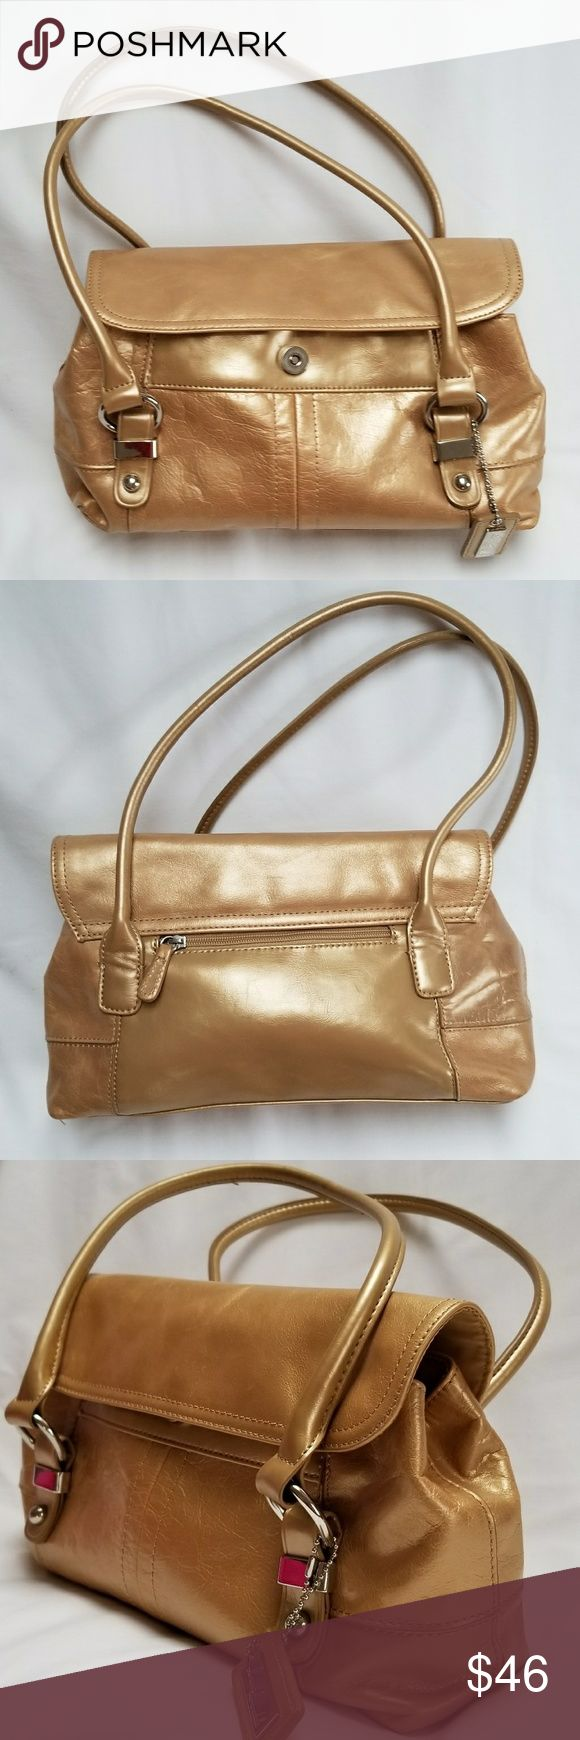 Loaura Loansdal gold bag Golden opportunity to on this and usual bag by this famous person.  One outside zipper pocket.  Snap closure with overfold, 2 zippered  pockets inside,  2 slight-in pockets  Great condition. Loaura Loansdale Bags Satchels